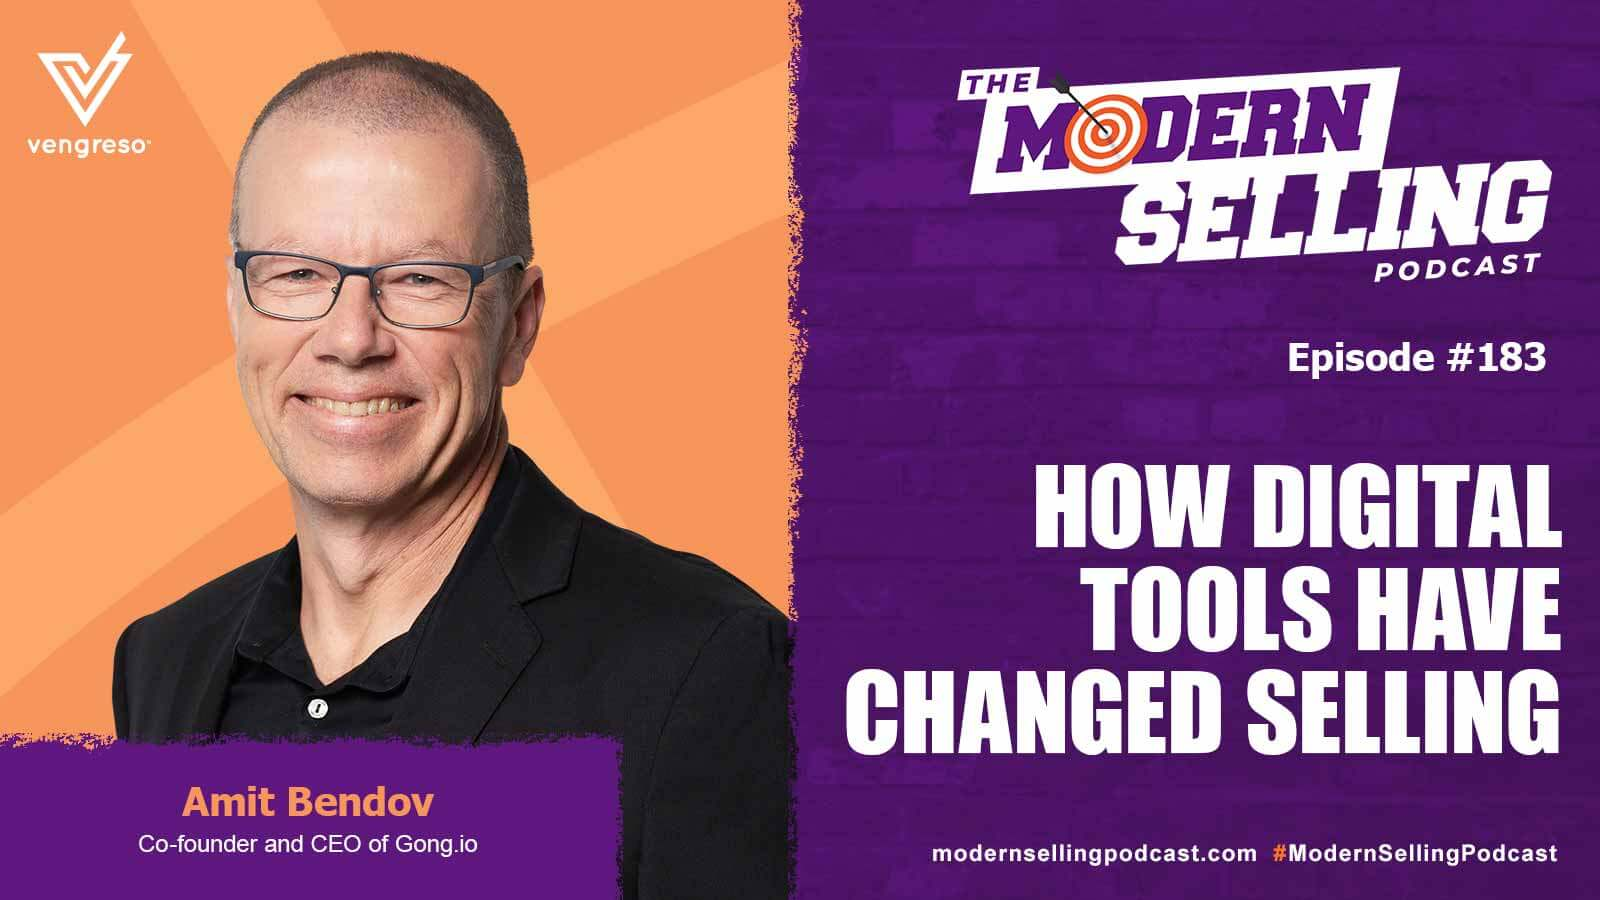 How Digital Tools Have Changed Selling